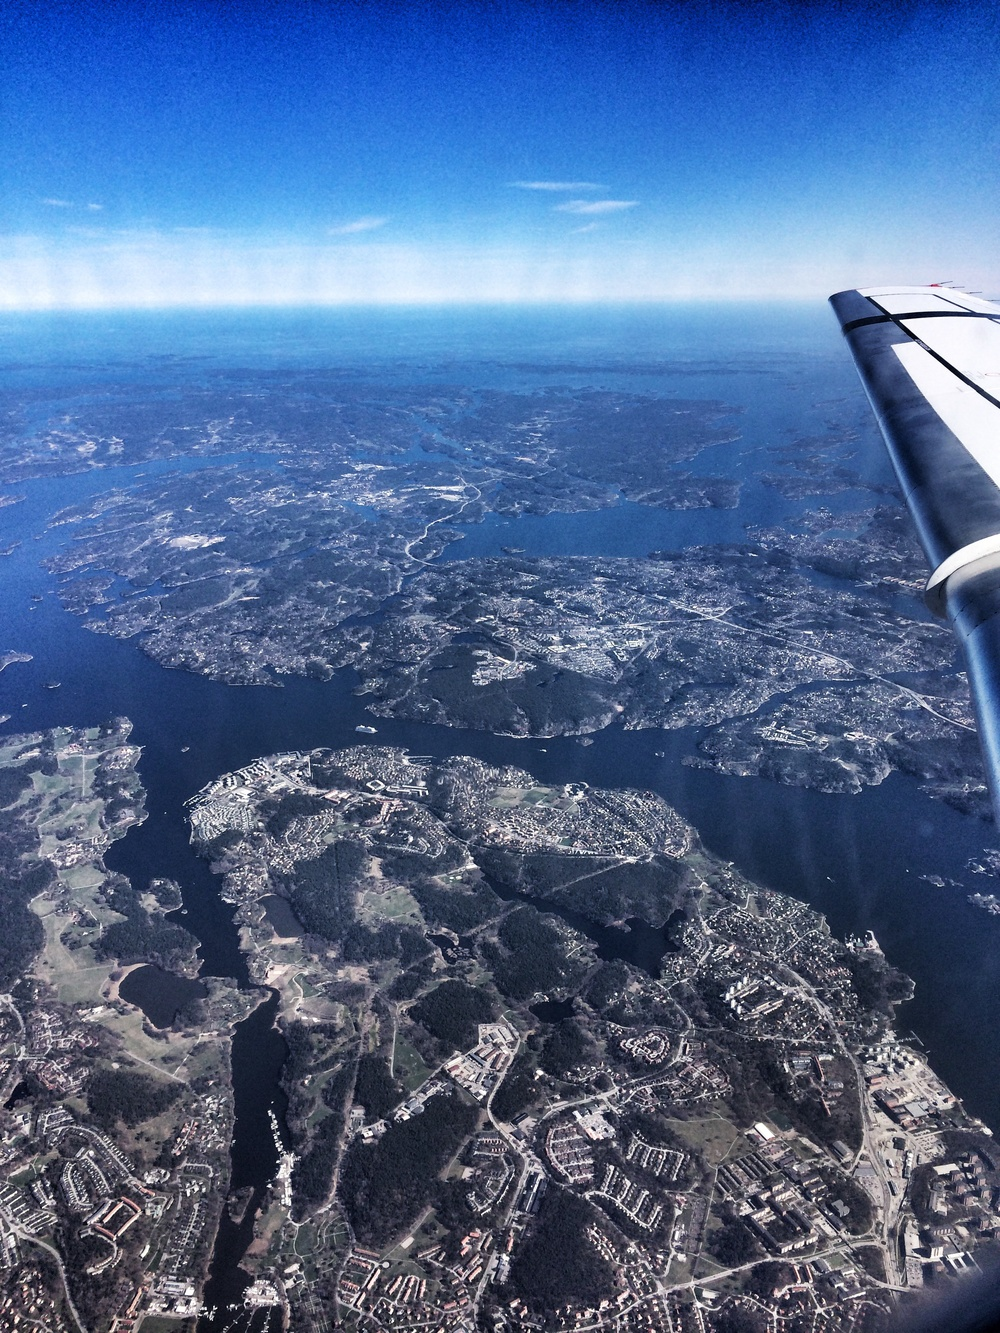 A picture shortly before we were landing in Stockholm